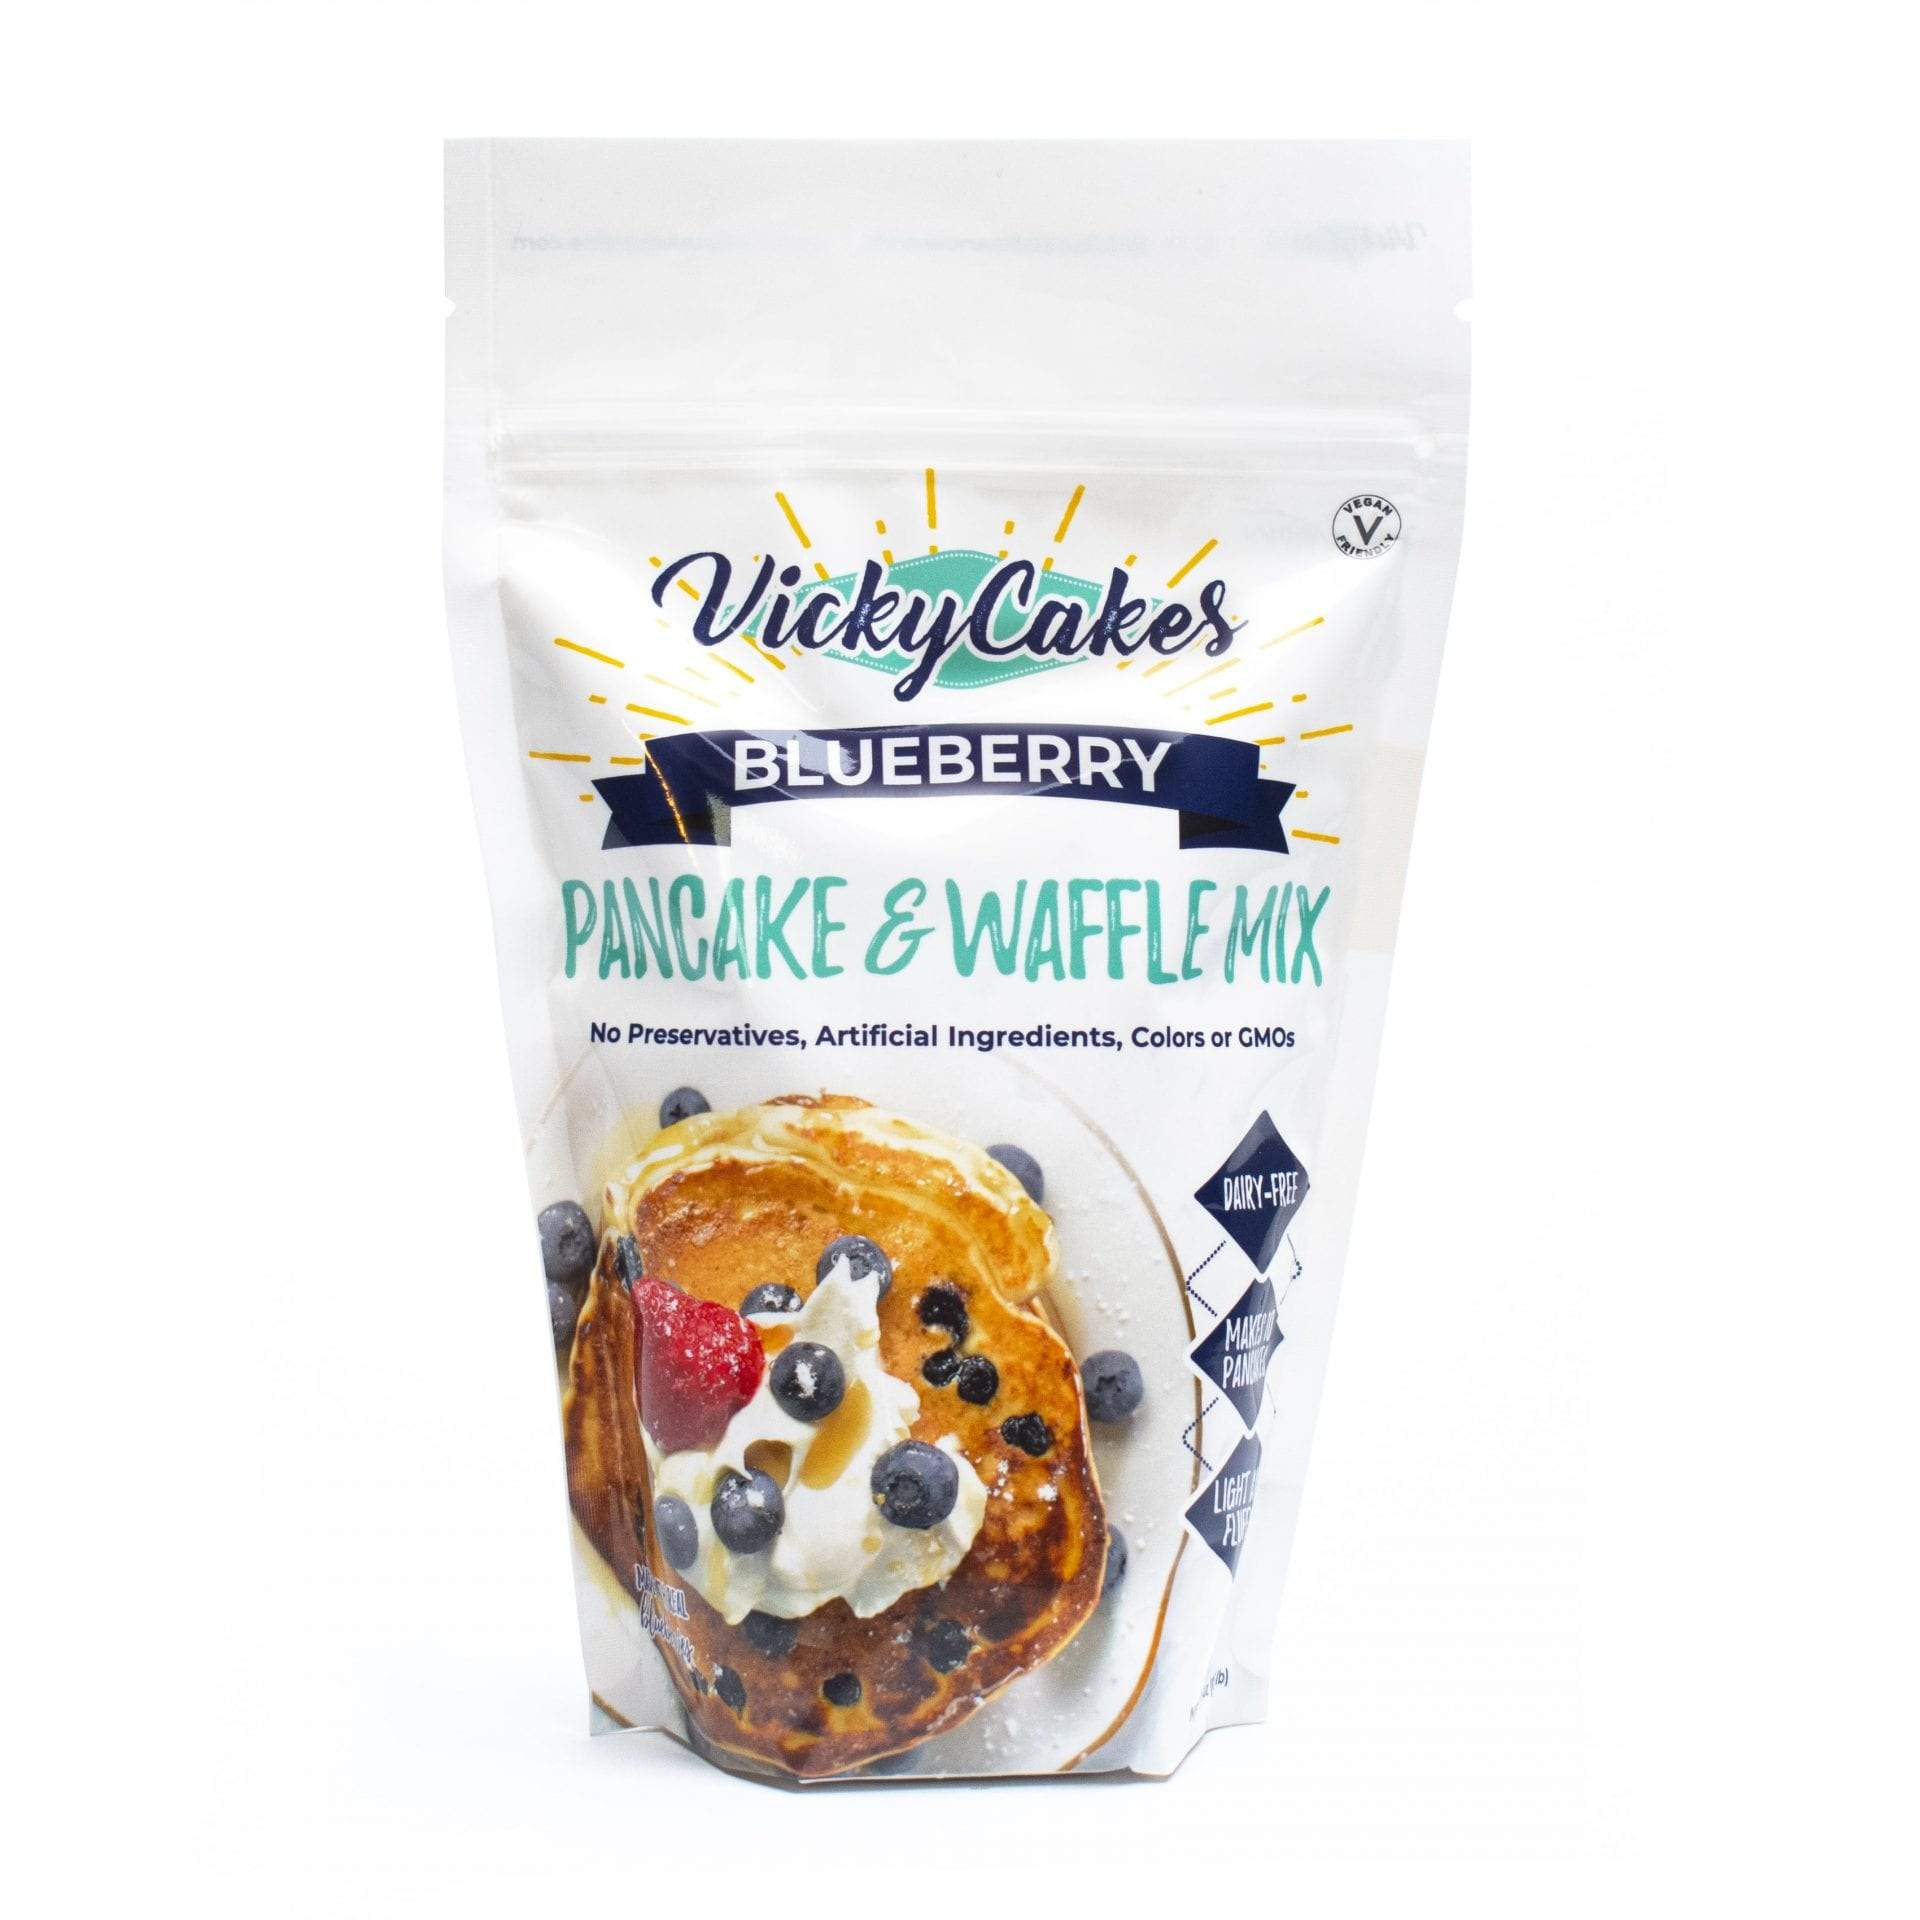 Blueberry Pancake and Waffle Mix